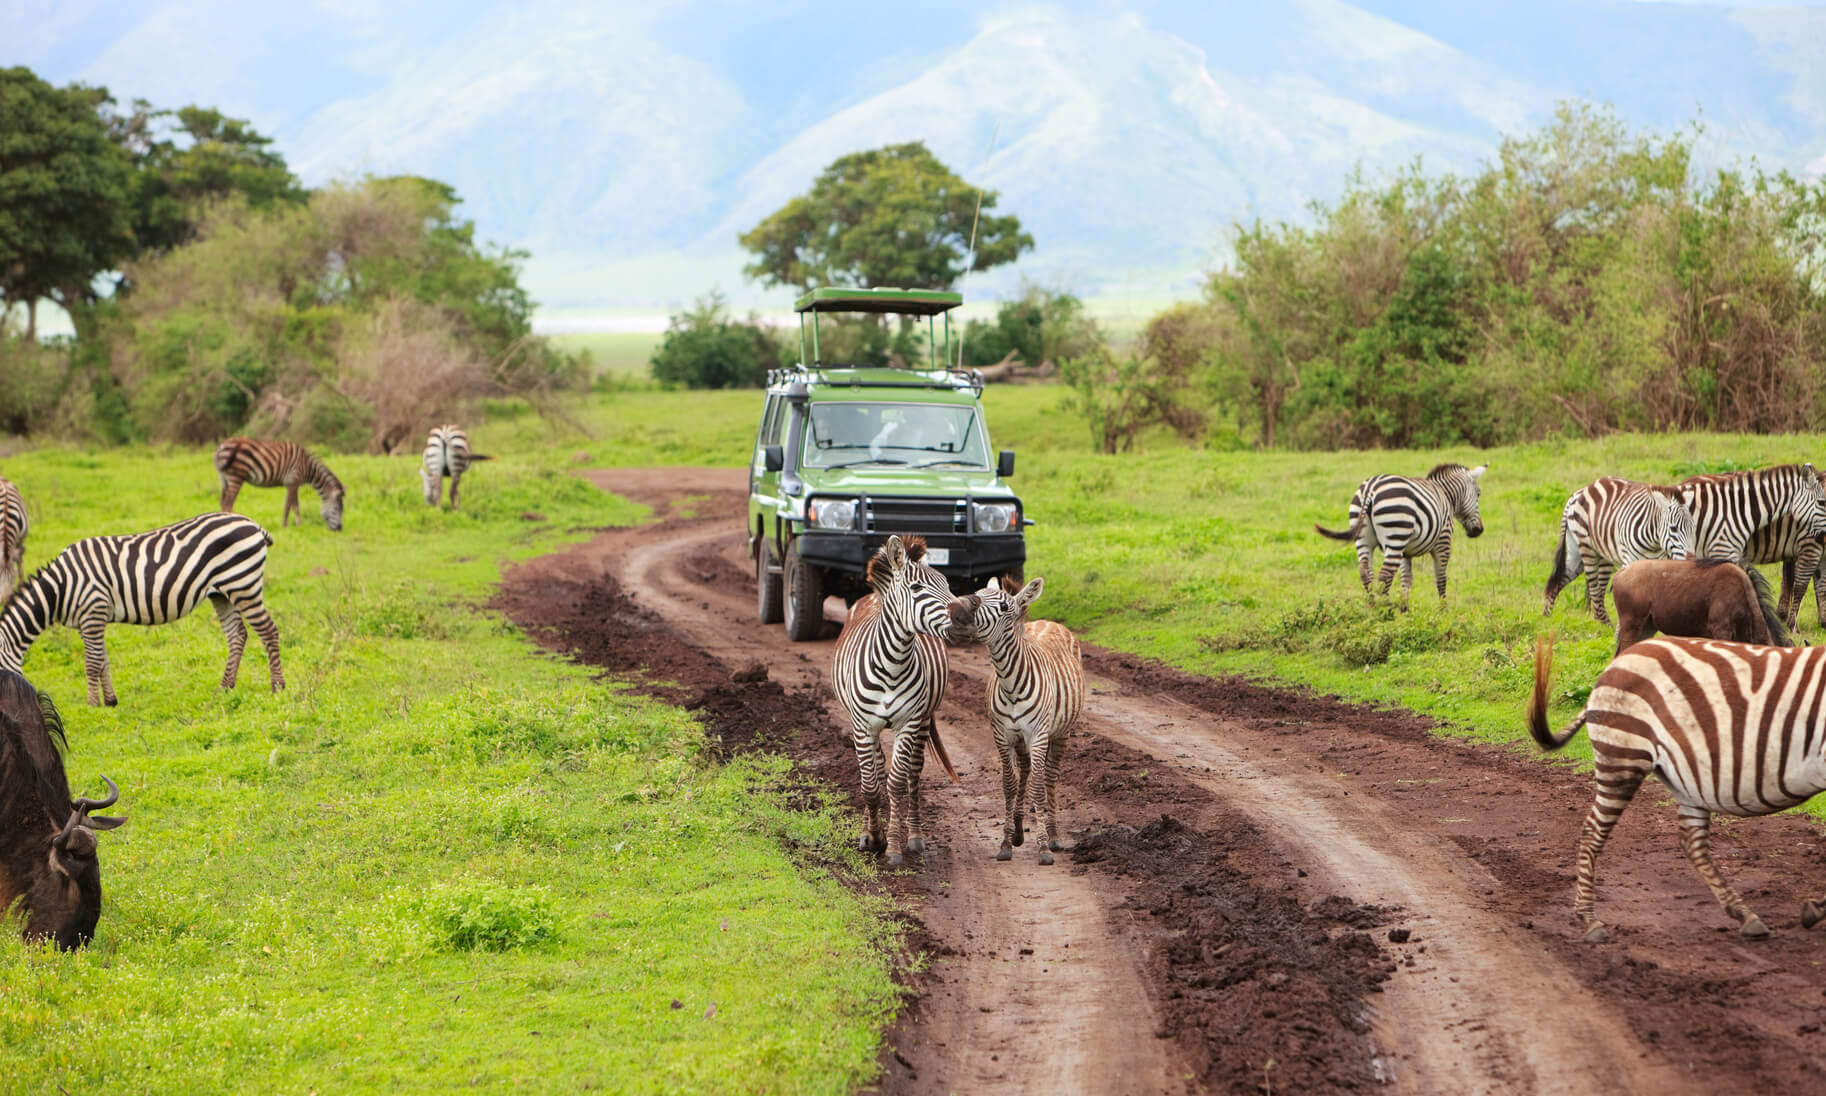 San Francisco to Nairobi, Kenya for only $551 roundtrip